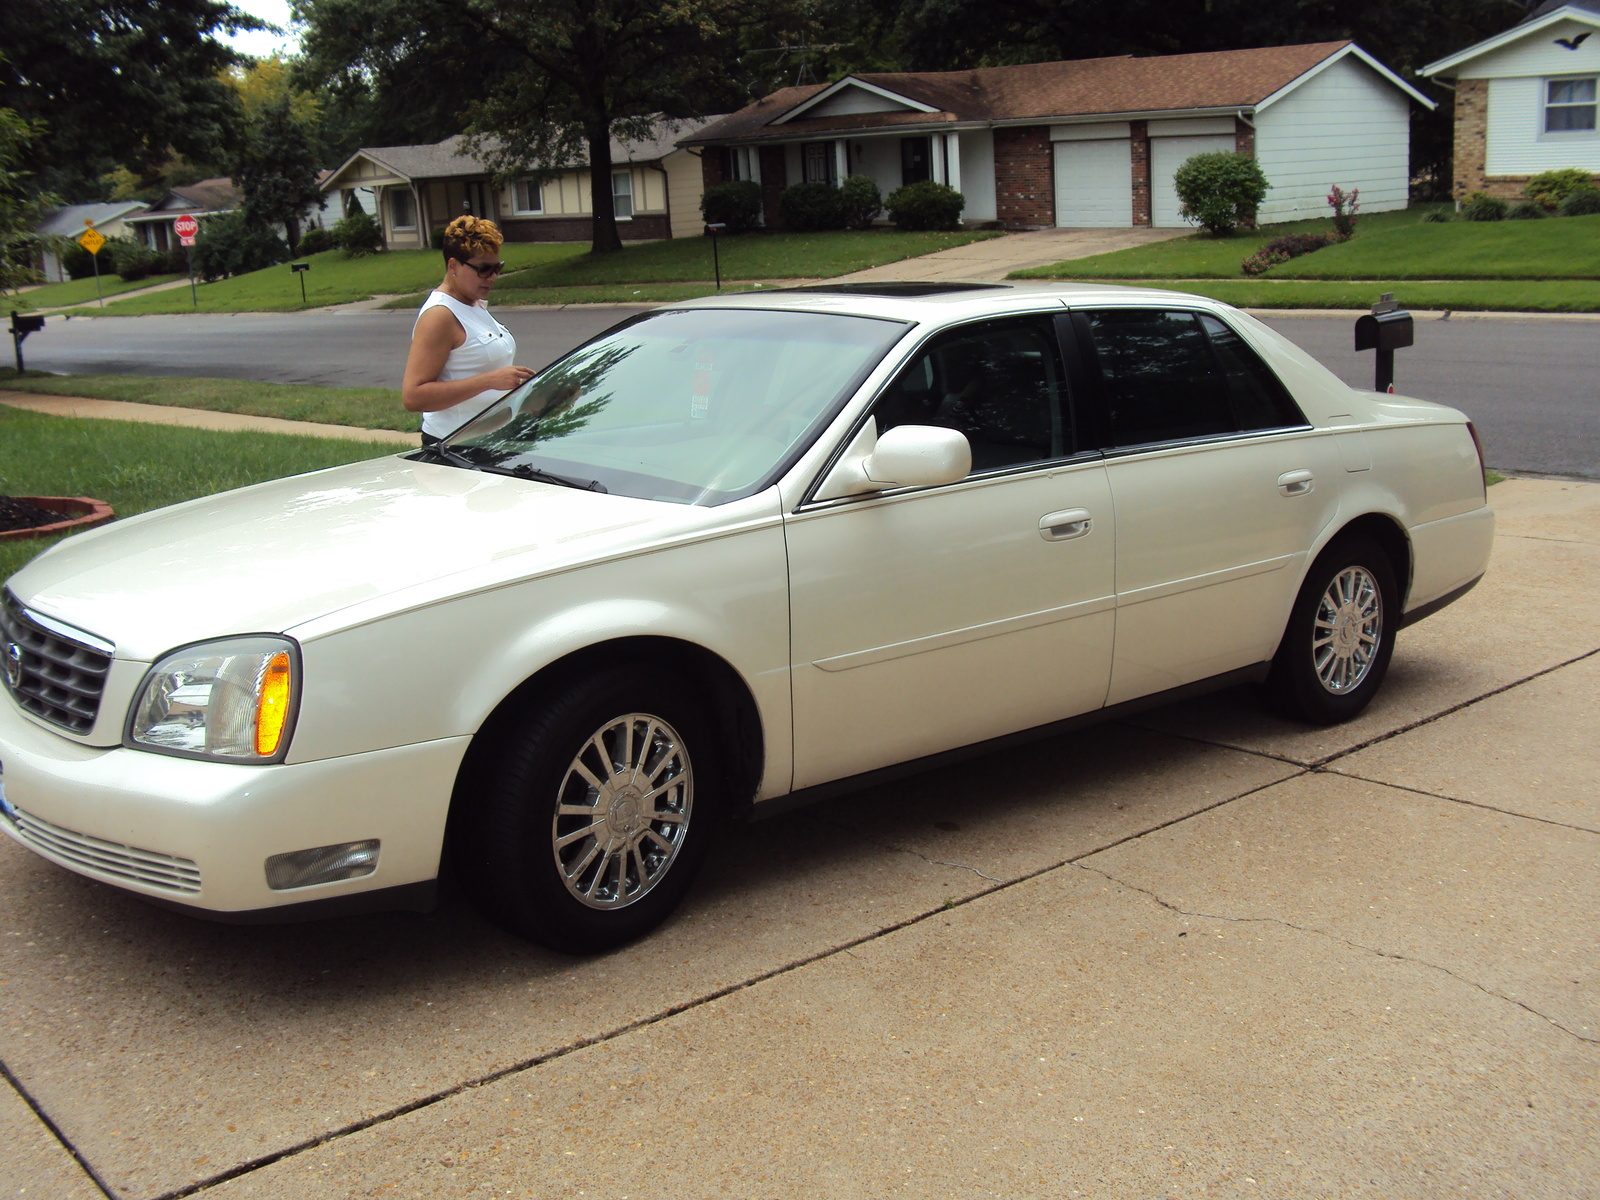 cadillac deville questions you have a 2001 deville rated as a fair price at 3695 but do not rate cargurus you have a 2001 deville rated as a fair